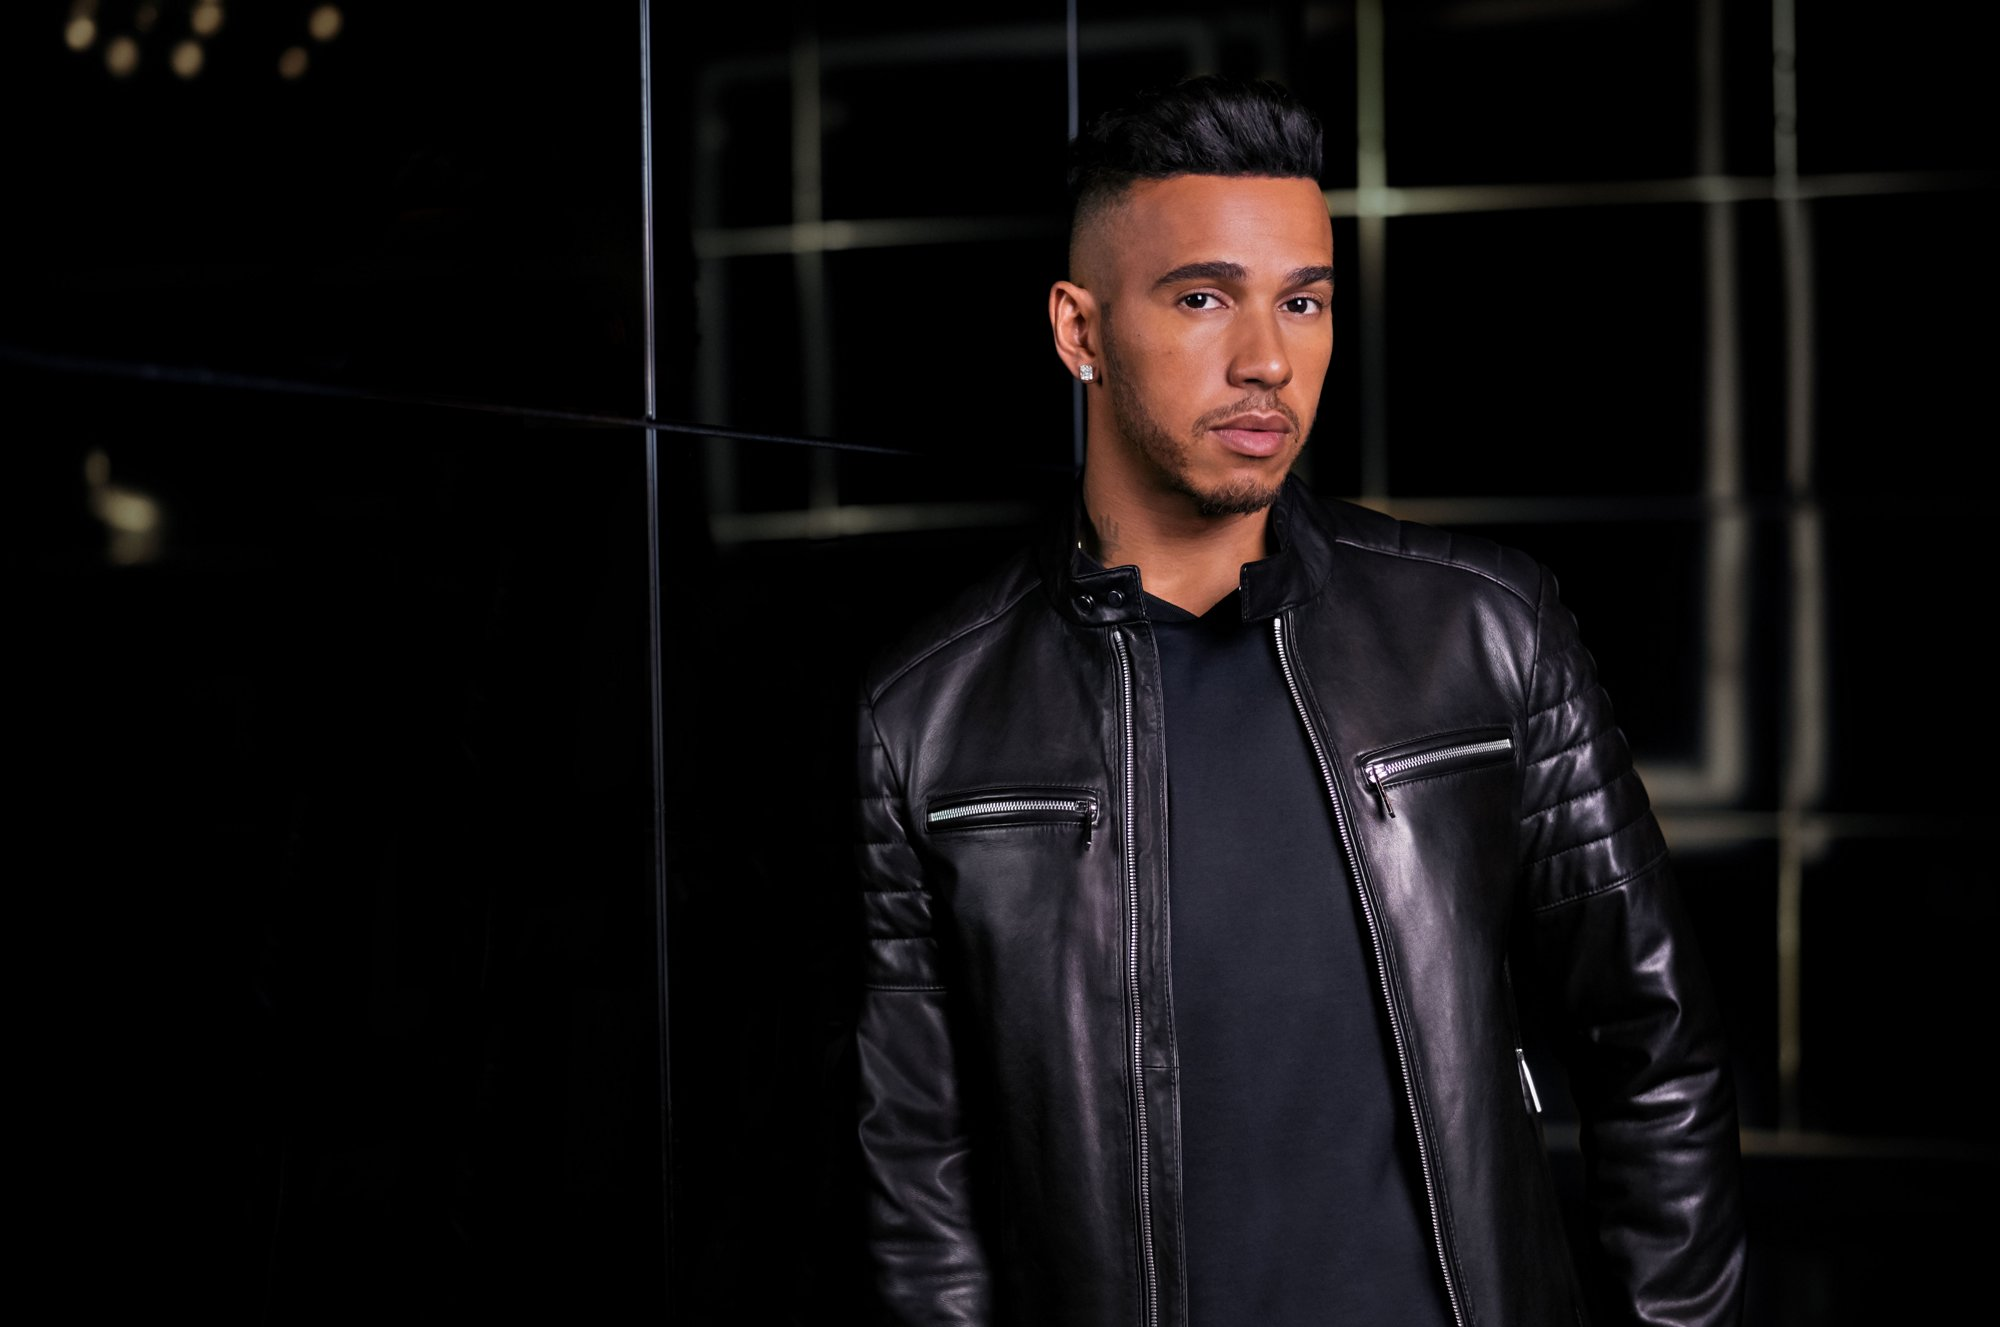 Lewis Hamilton wearing a black leather jacket by BOSS